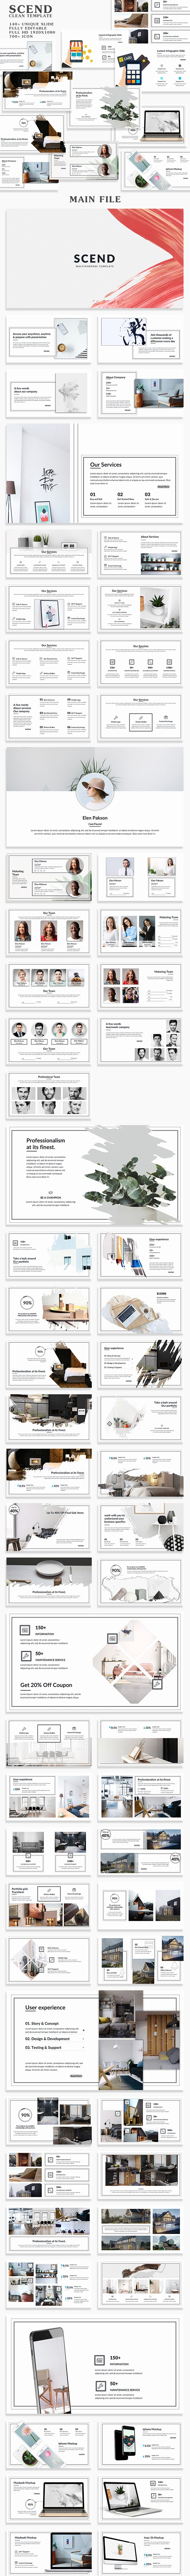 Scend Clean PowerPoint Template - Creative PowerPoint Templates